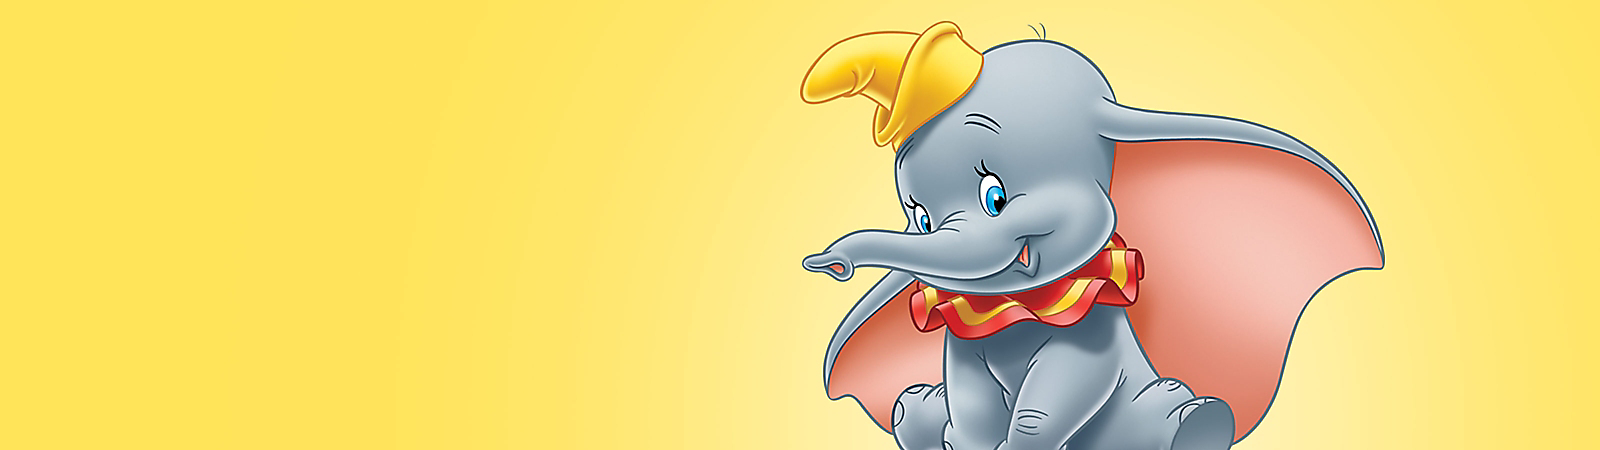 Background image of Dumbo